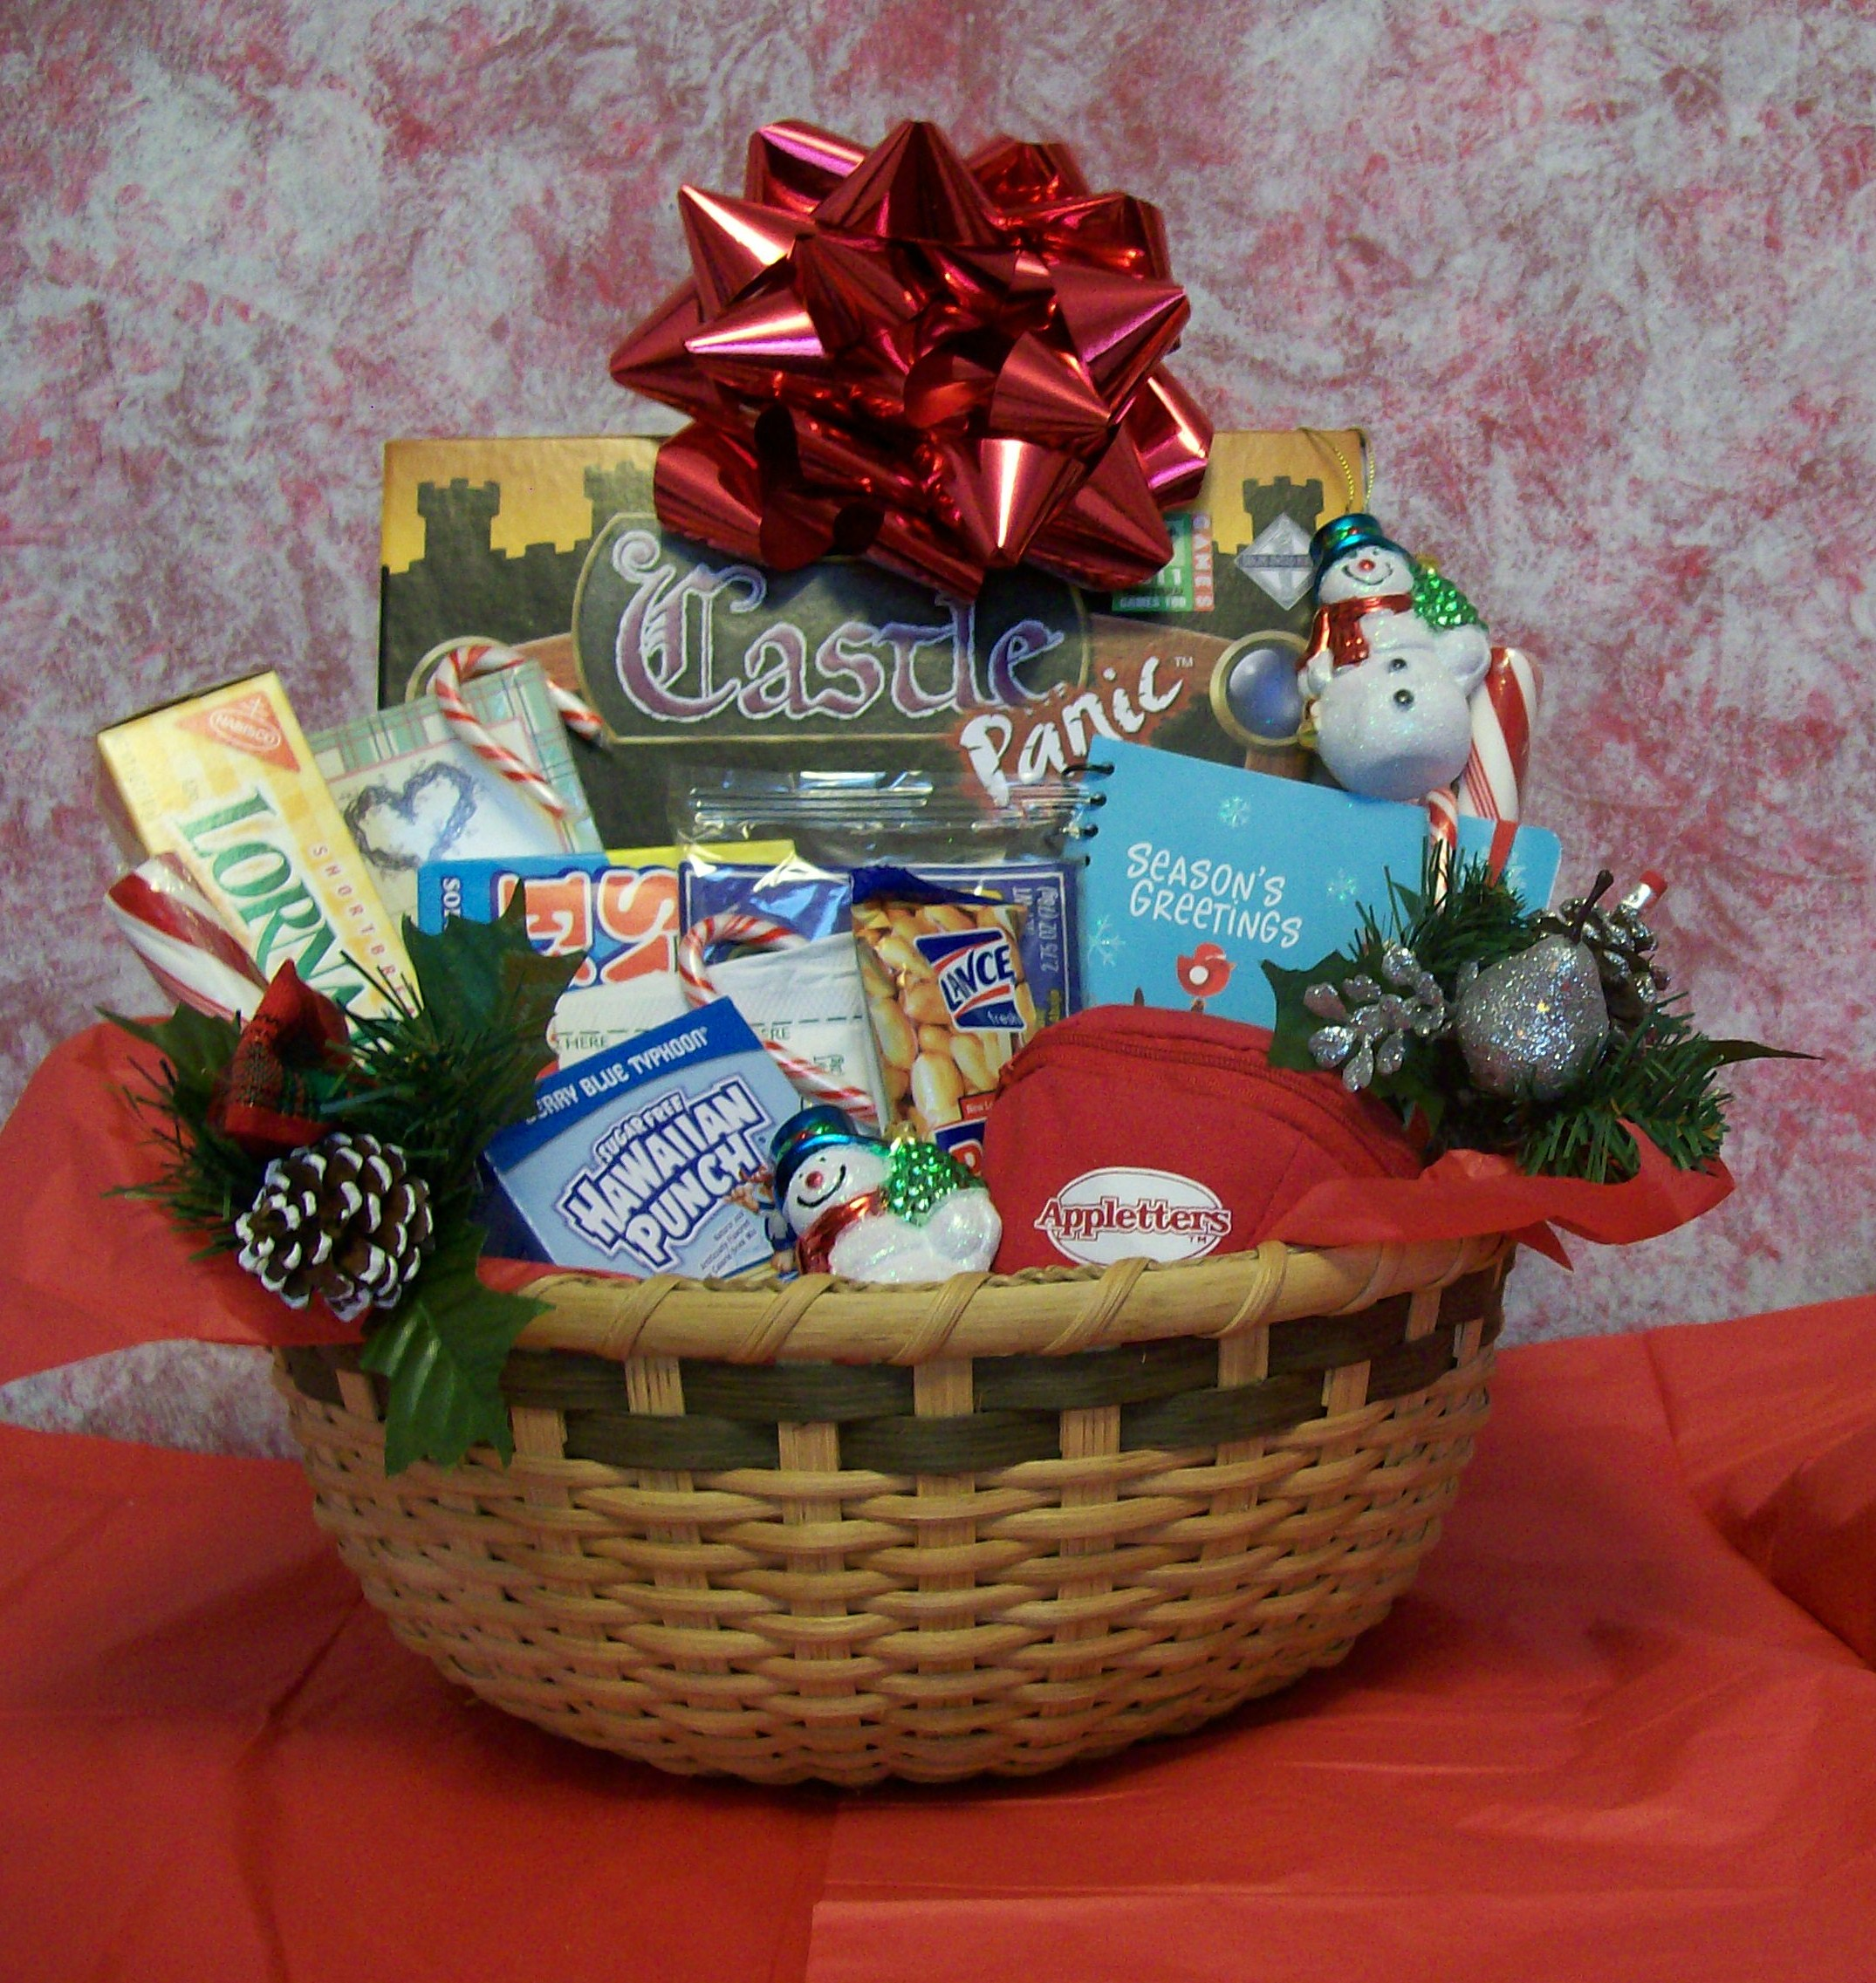 castle panic games gift basket for christmas